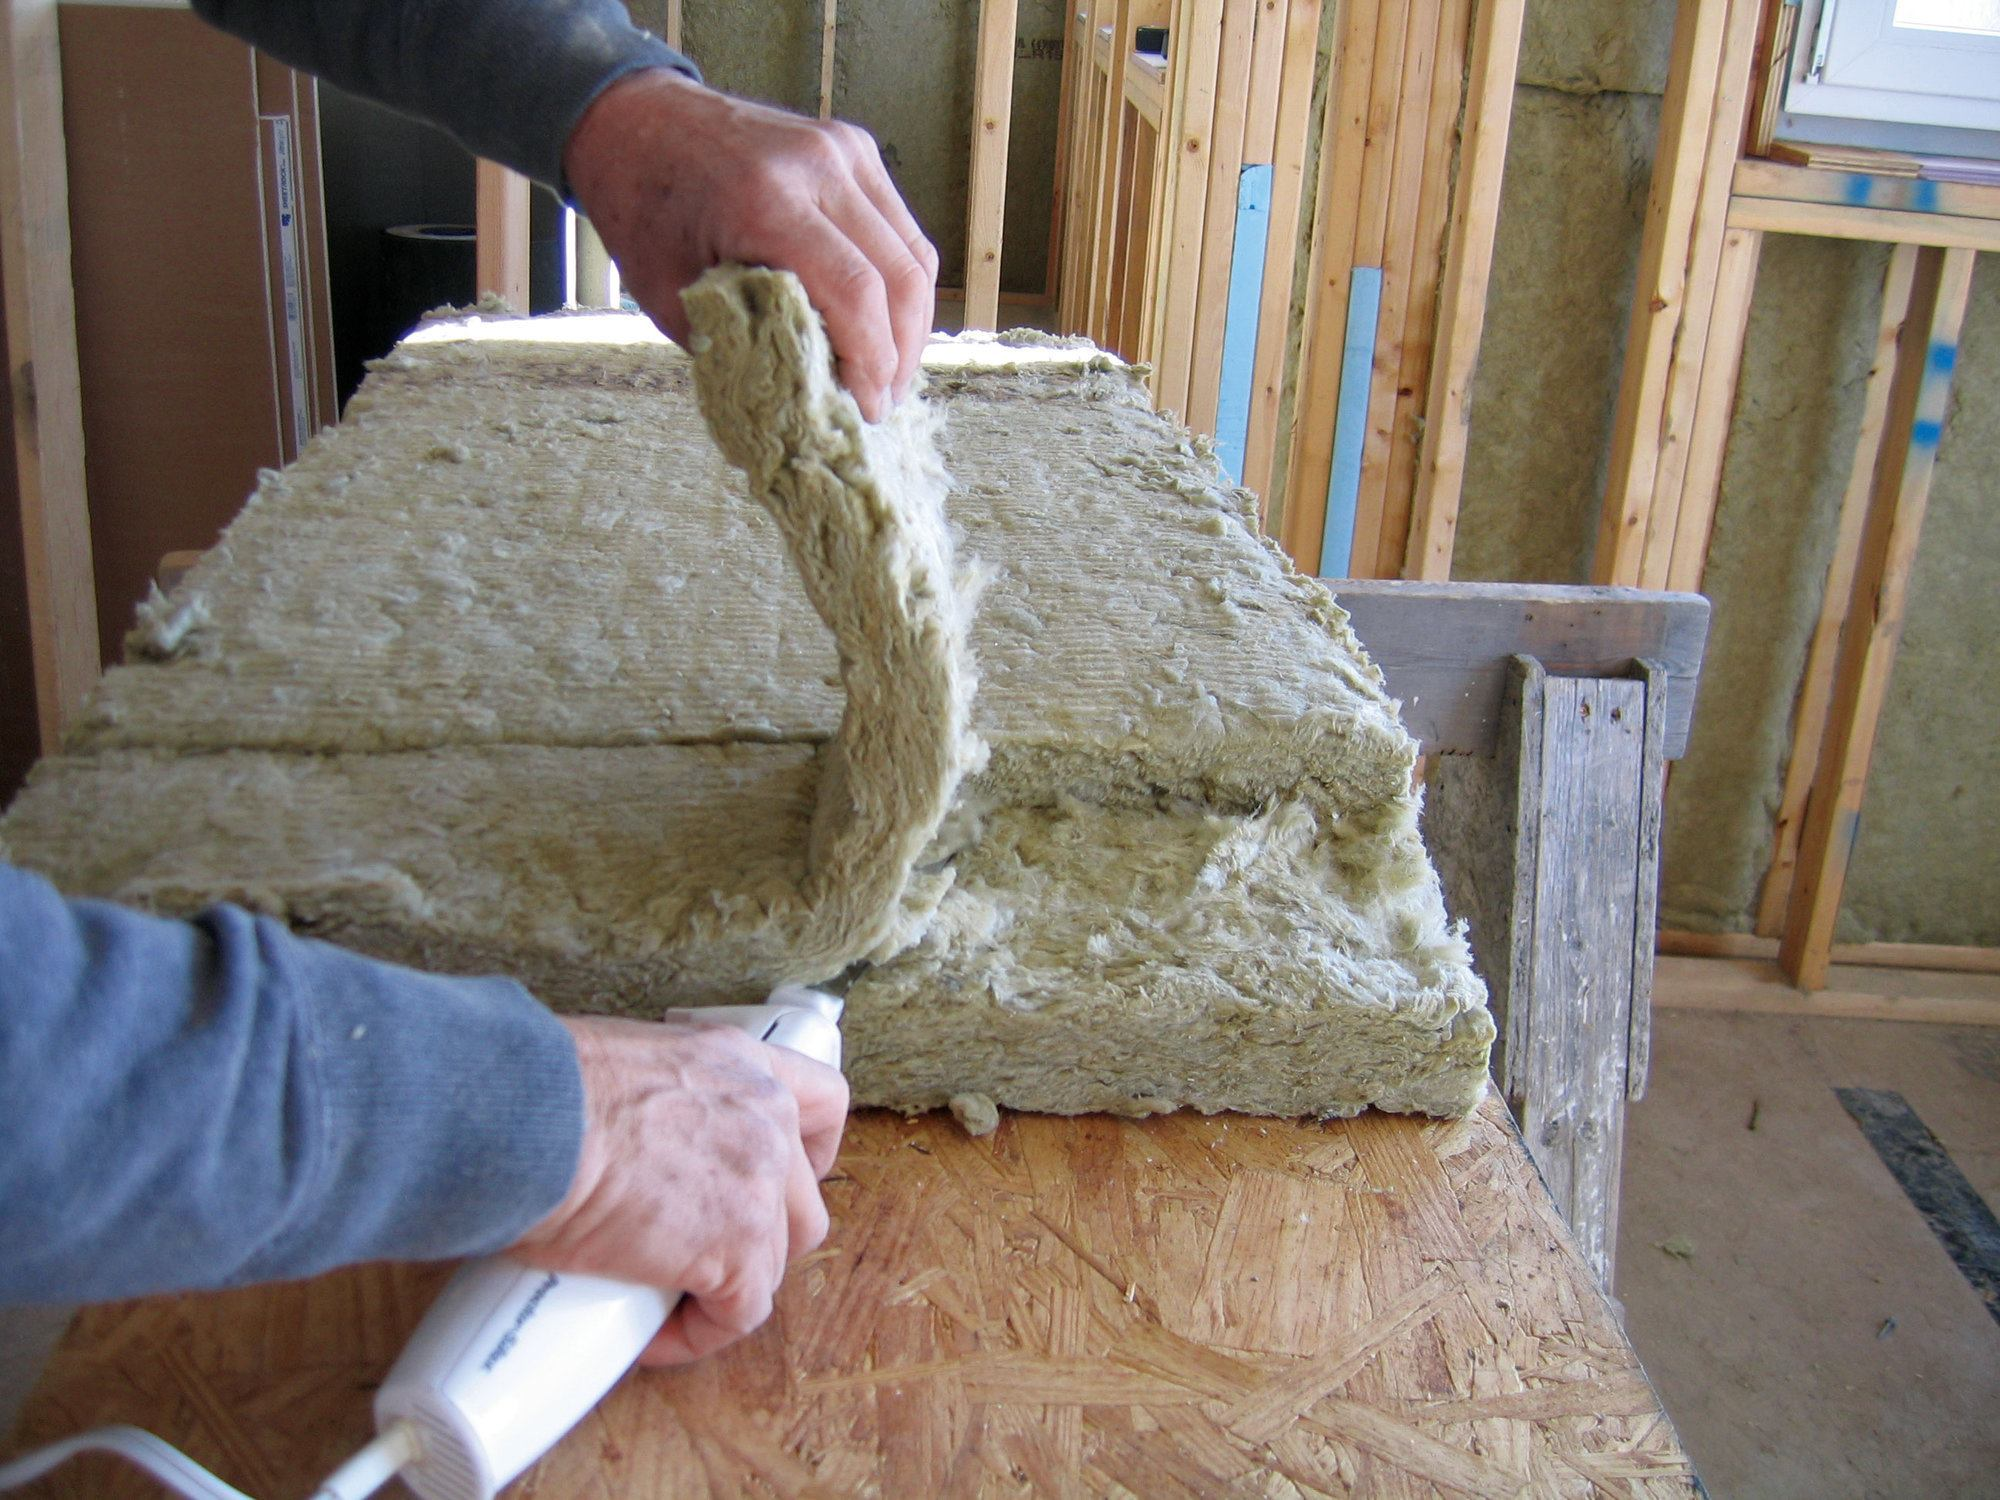 Working with roxul insulation jlc online for What is roxul insulation